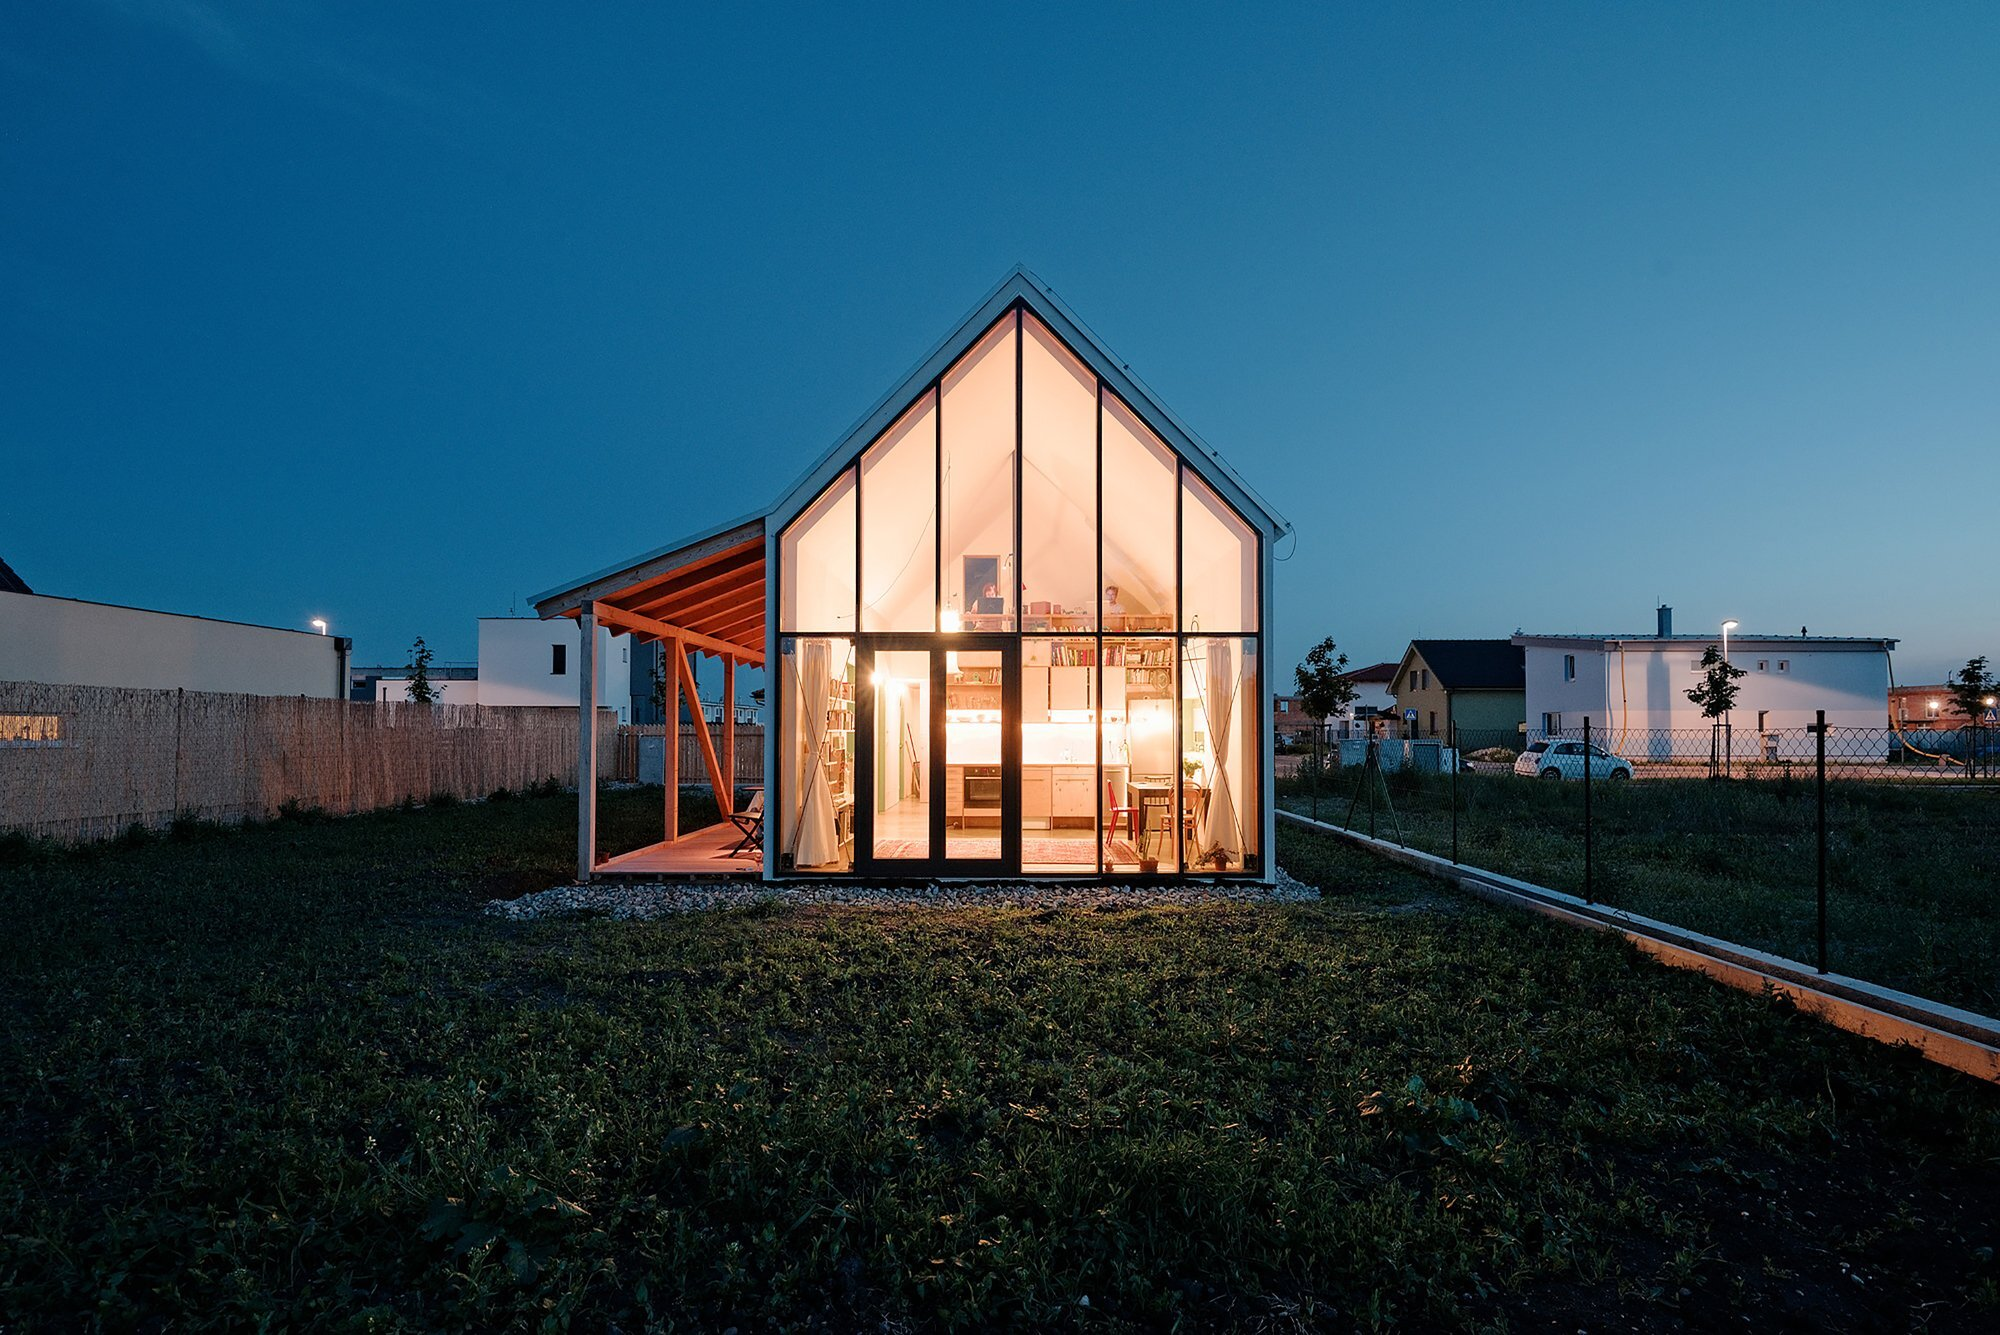 Small house in slovakia for 100 000 by jrkvc for Build a house for under 100k